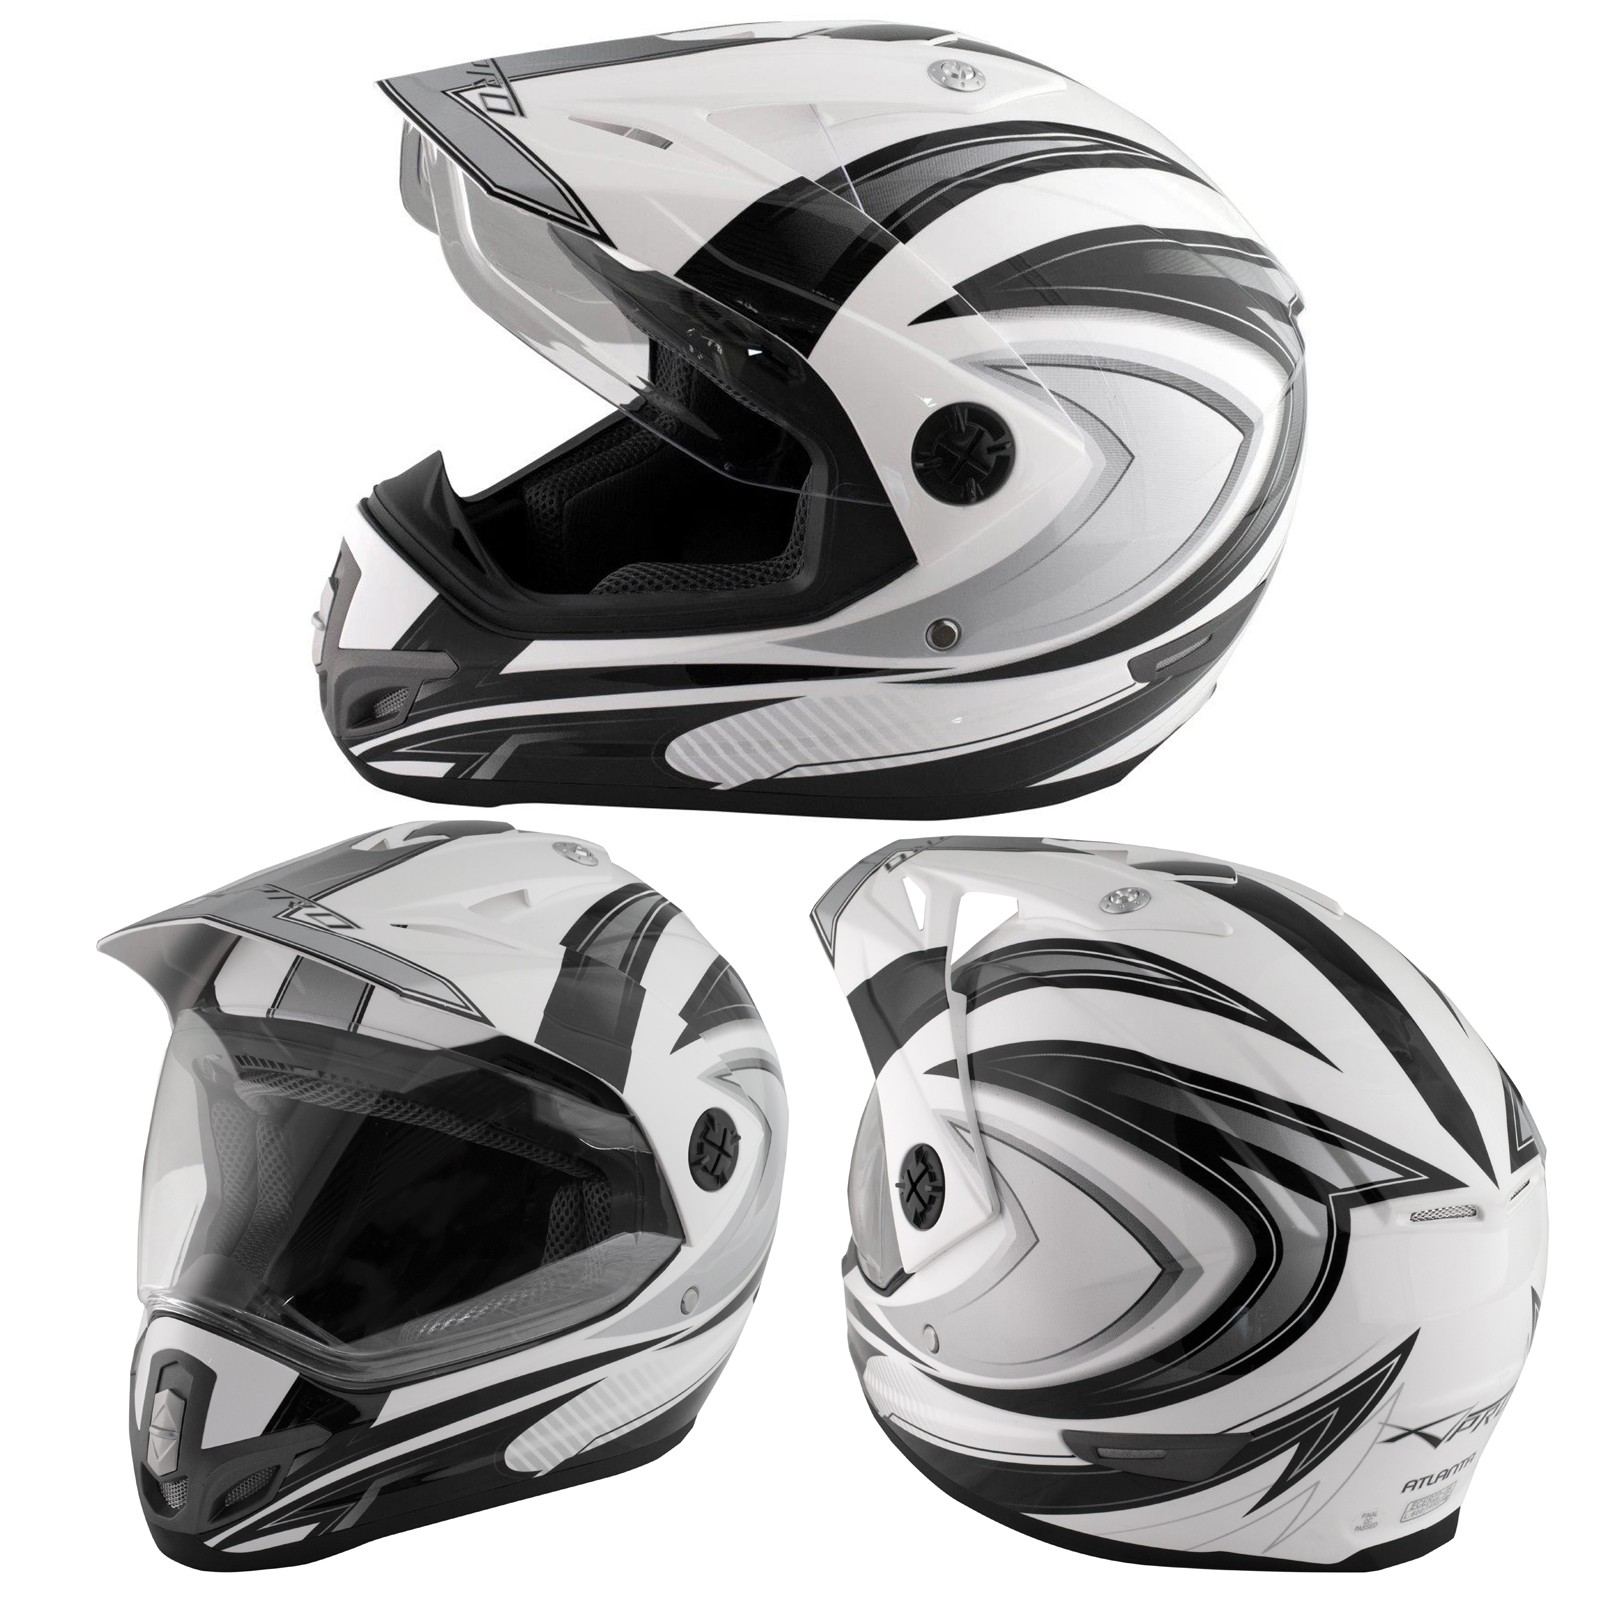 Casco Moto Cross Enduro Trial Quad Off Road Visiera Anti Nebbia Nero